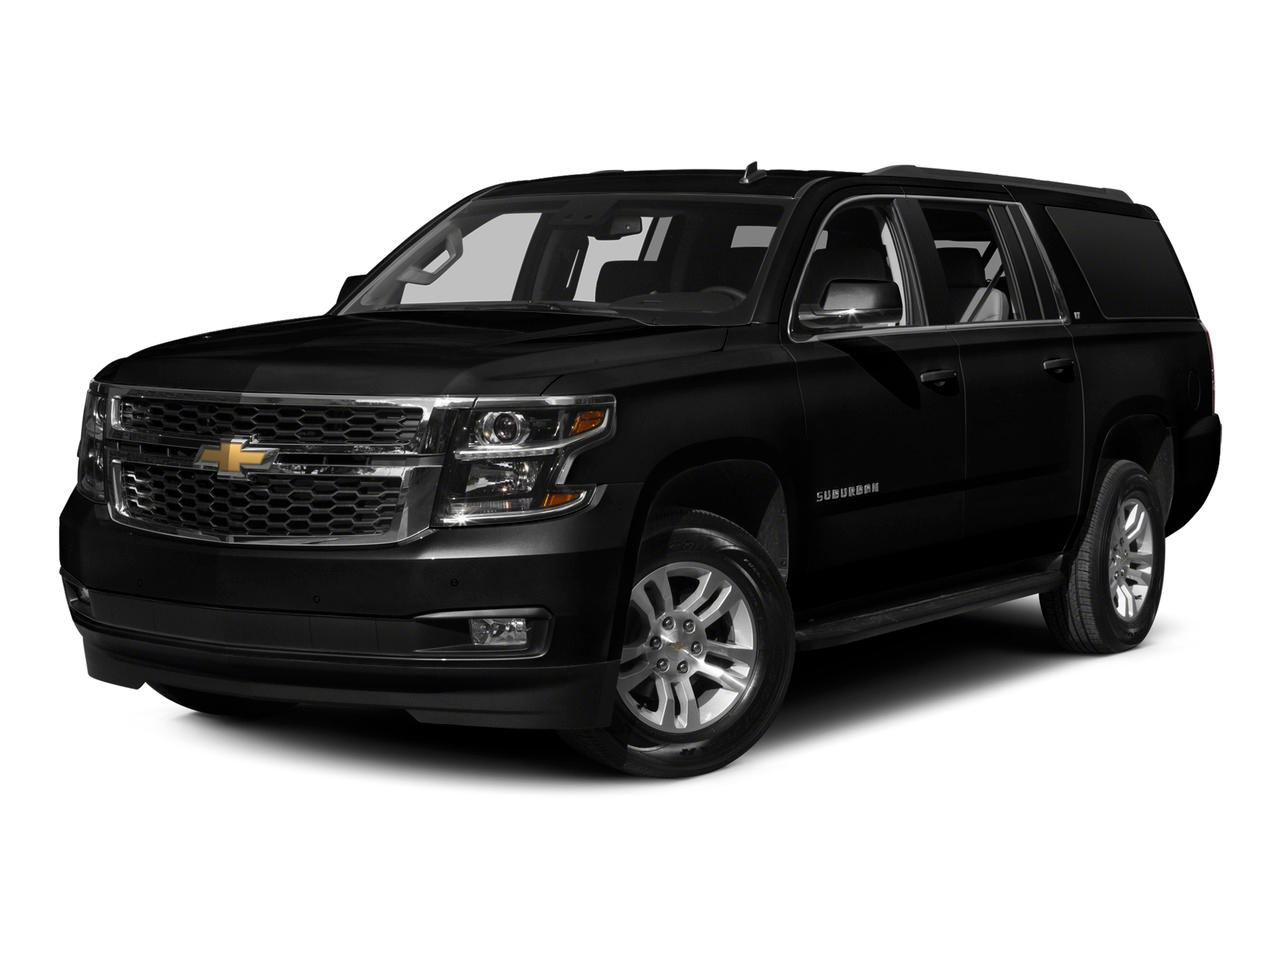 2015 Chevrolet Suburban Vehicle Photo in Corpus Christi, TX 78410-4506